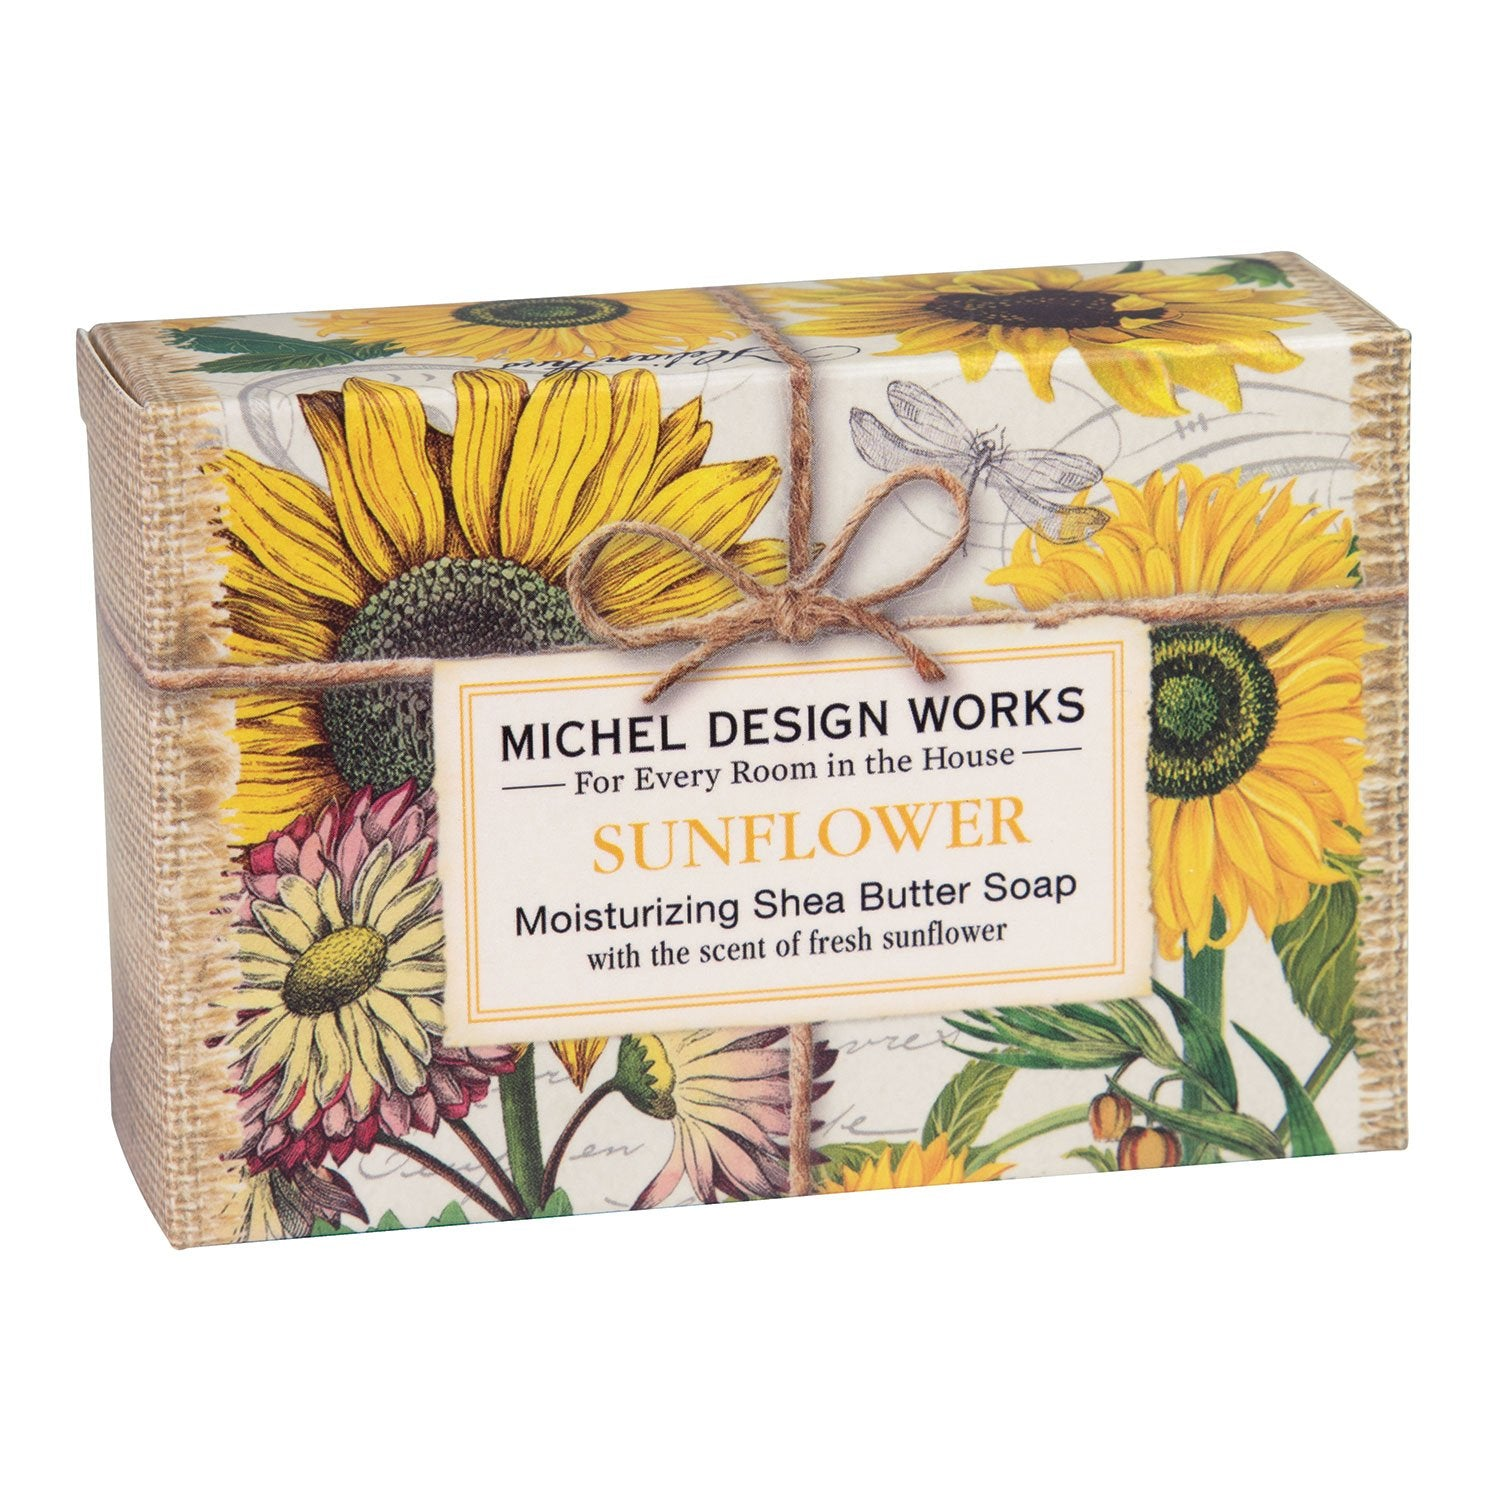 Sunflower 4.5 oz. Boxed Soap